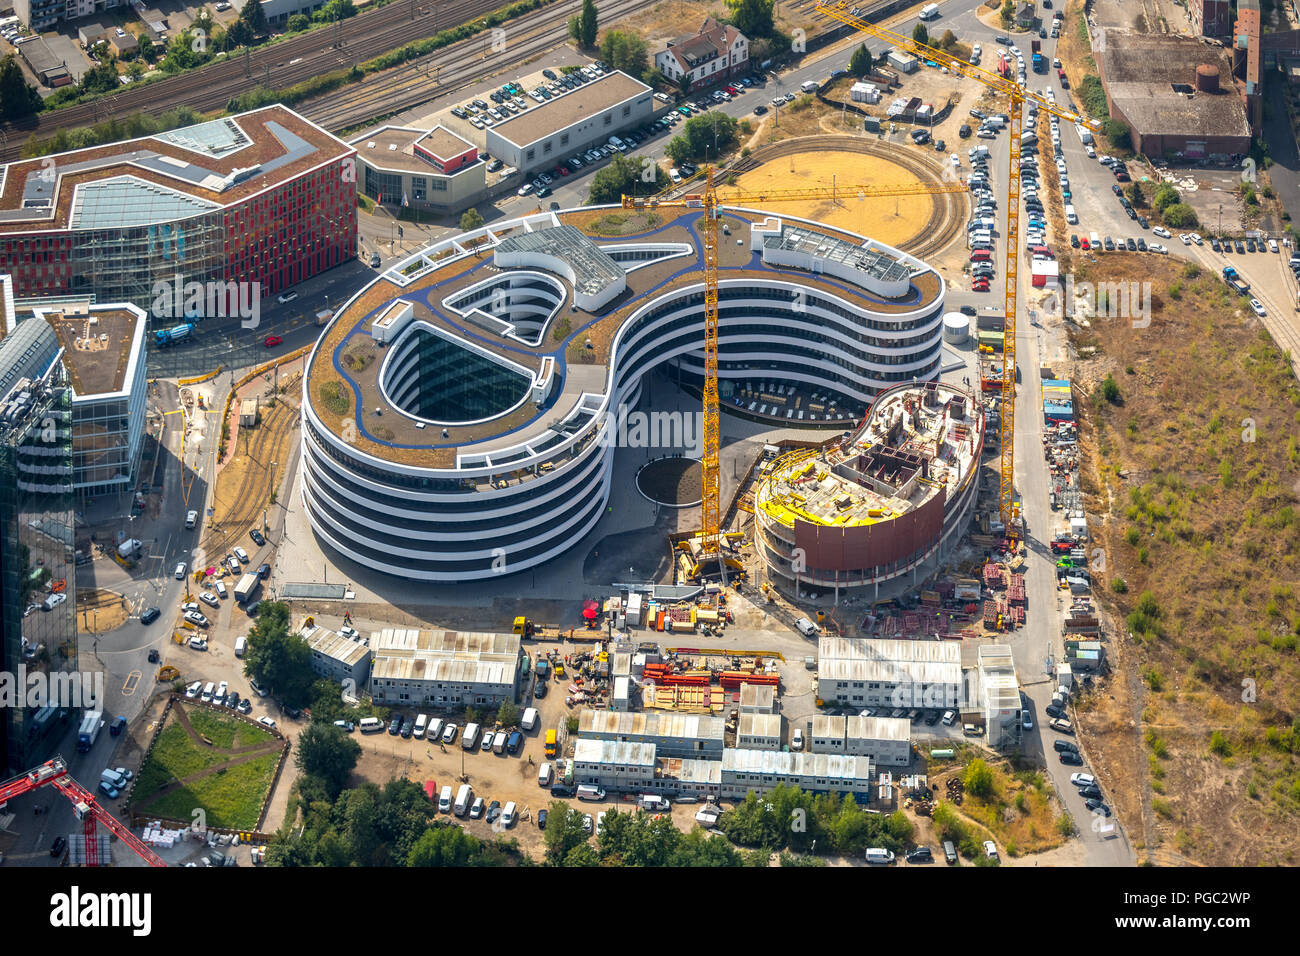 Construction for the new building Trivago-headquarters on the boiler Road in the media harbour in Düsseldorf, Hafen, Düsseldorf, Rhineland, Nordrhein- - Stock Image